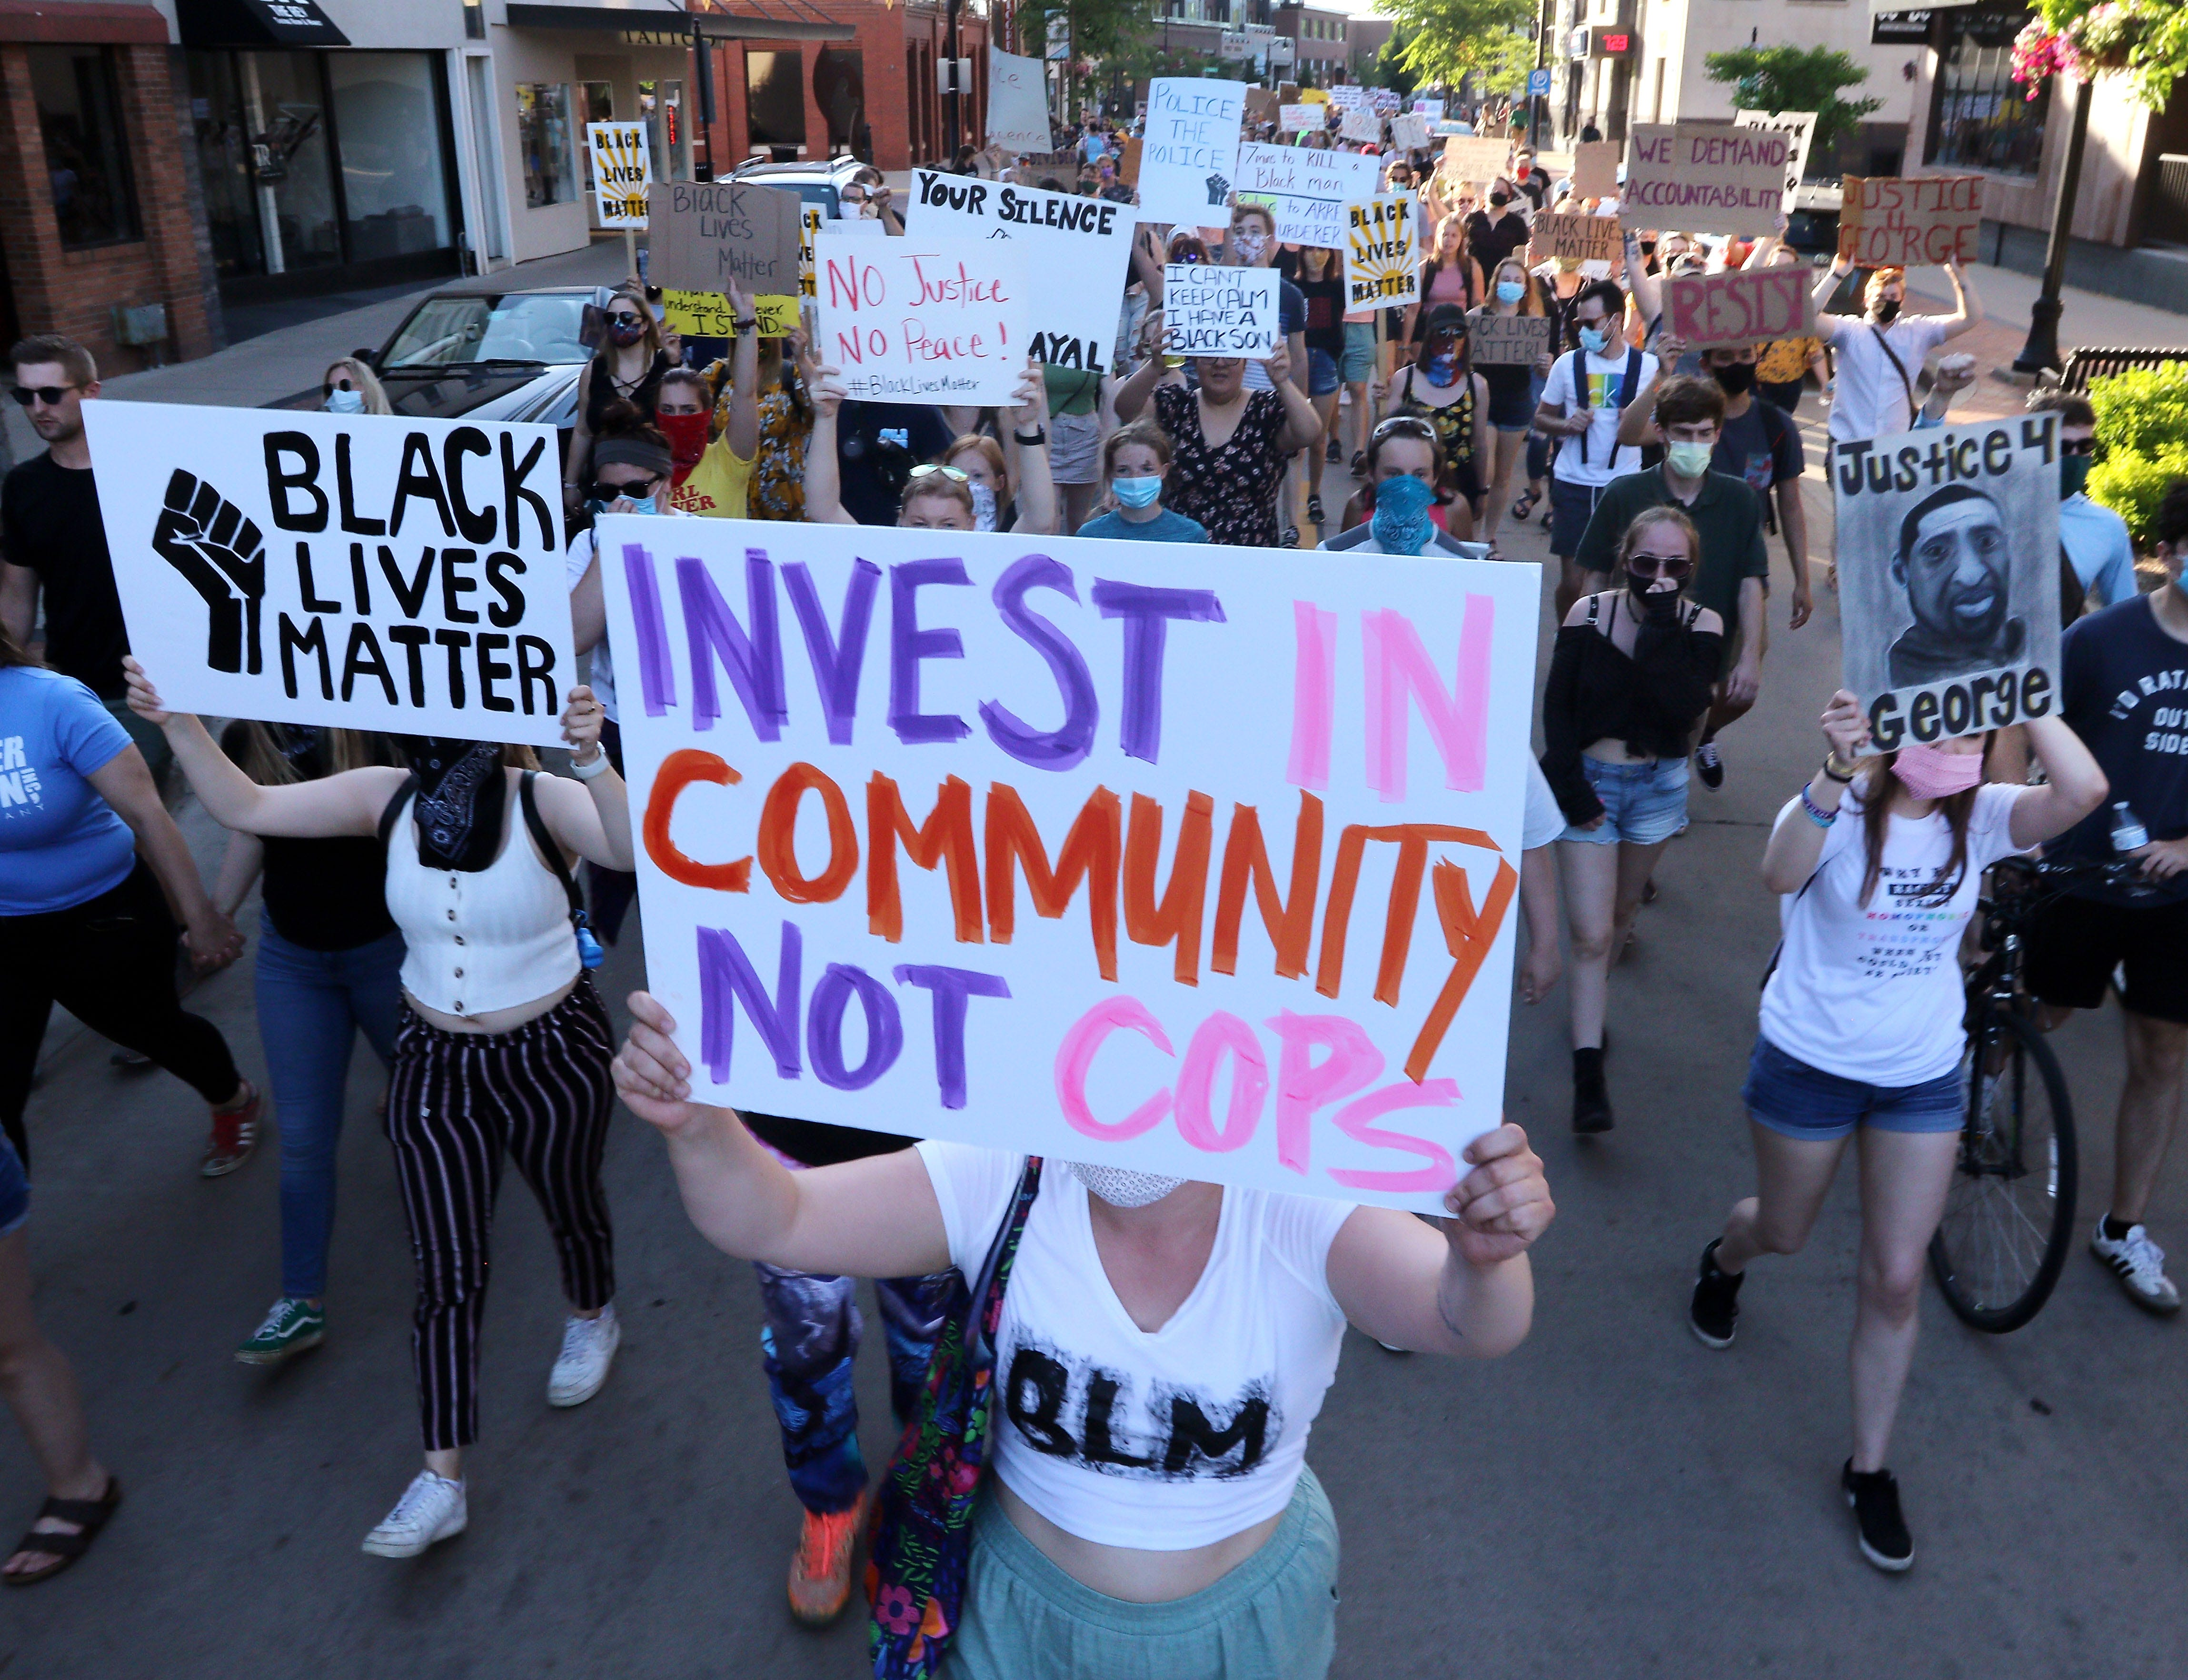 Peaceful protesters marched along Barstow Street in Eau Claire on June 5, 2020, as part of a rally in Phoenix Park. View more photos at LeaderTelegramPhotos.com.